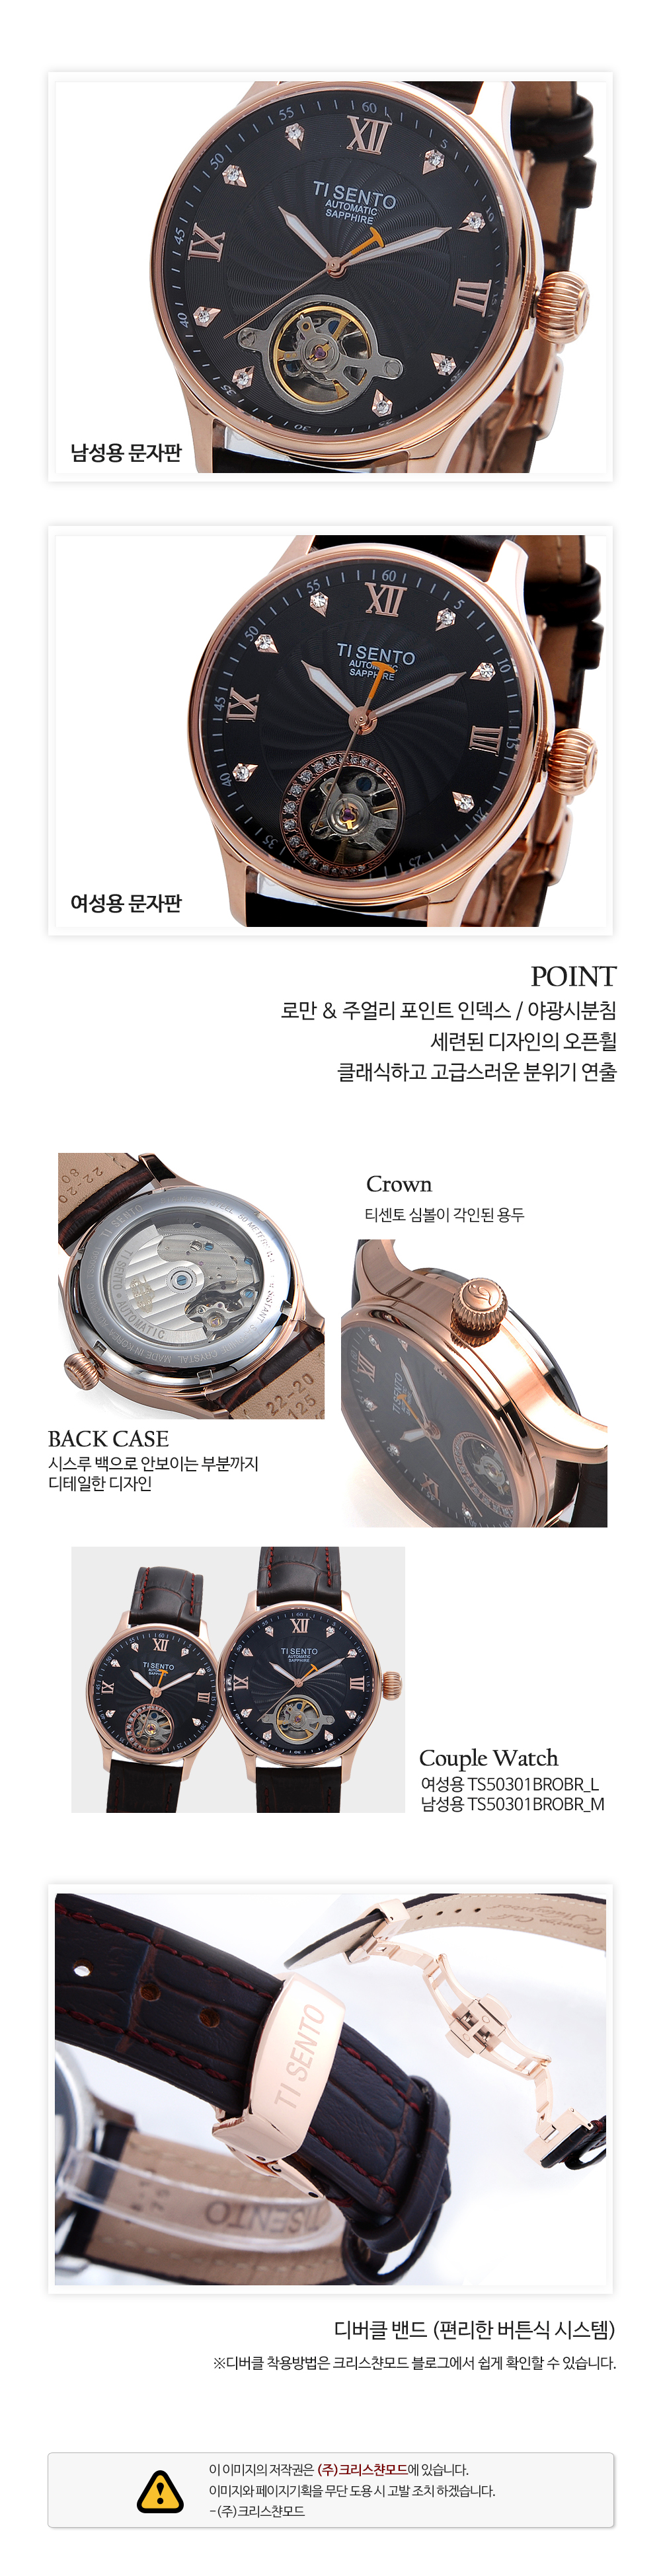 [ TISENTO ] KOREA MADE HIGH QUALITY AUTOMATIC MECHANICAL GENUINE CALF WATERPROOF LEATHER STRAP WATCH TS 50301 BROBRL